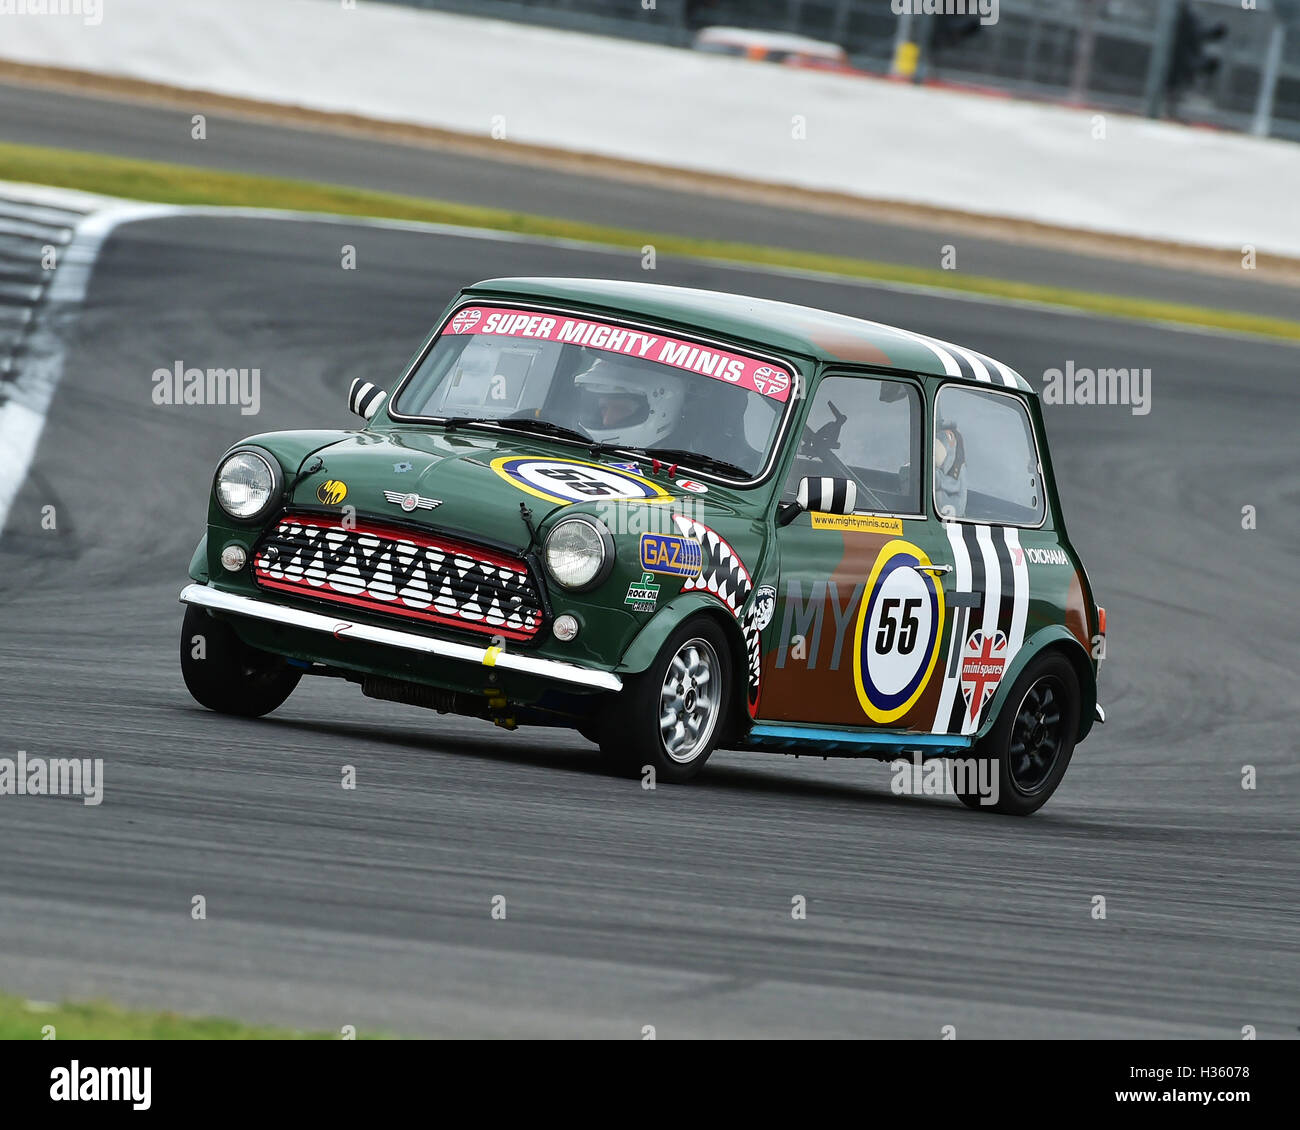 Adrian Tuckley, Super Mighty Mini, 1293, Mighty Mini Championship, Saturday, Silverstone, Silverstone truck festival, - Stock Image